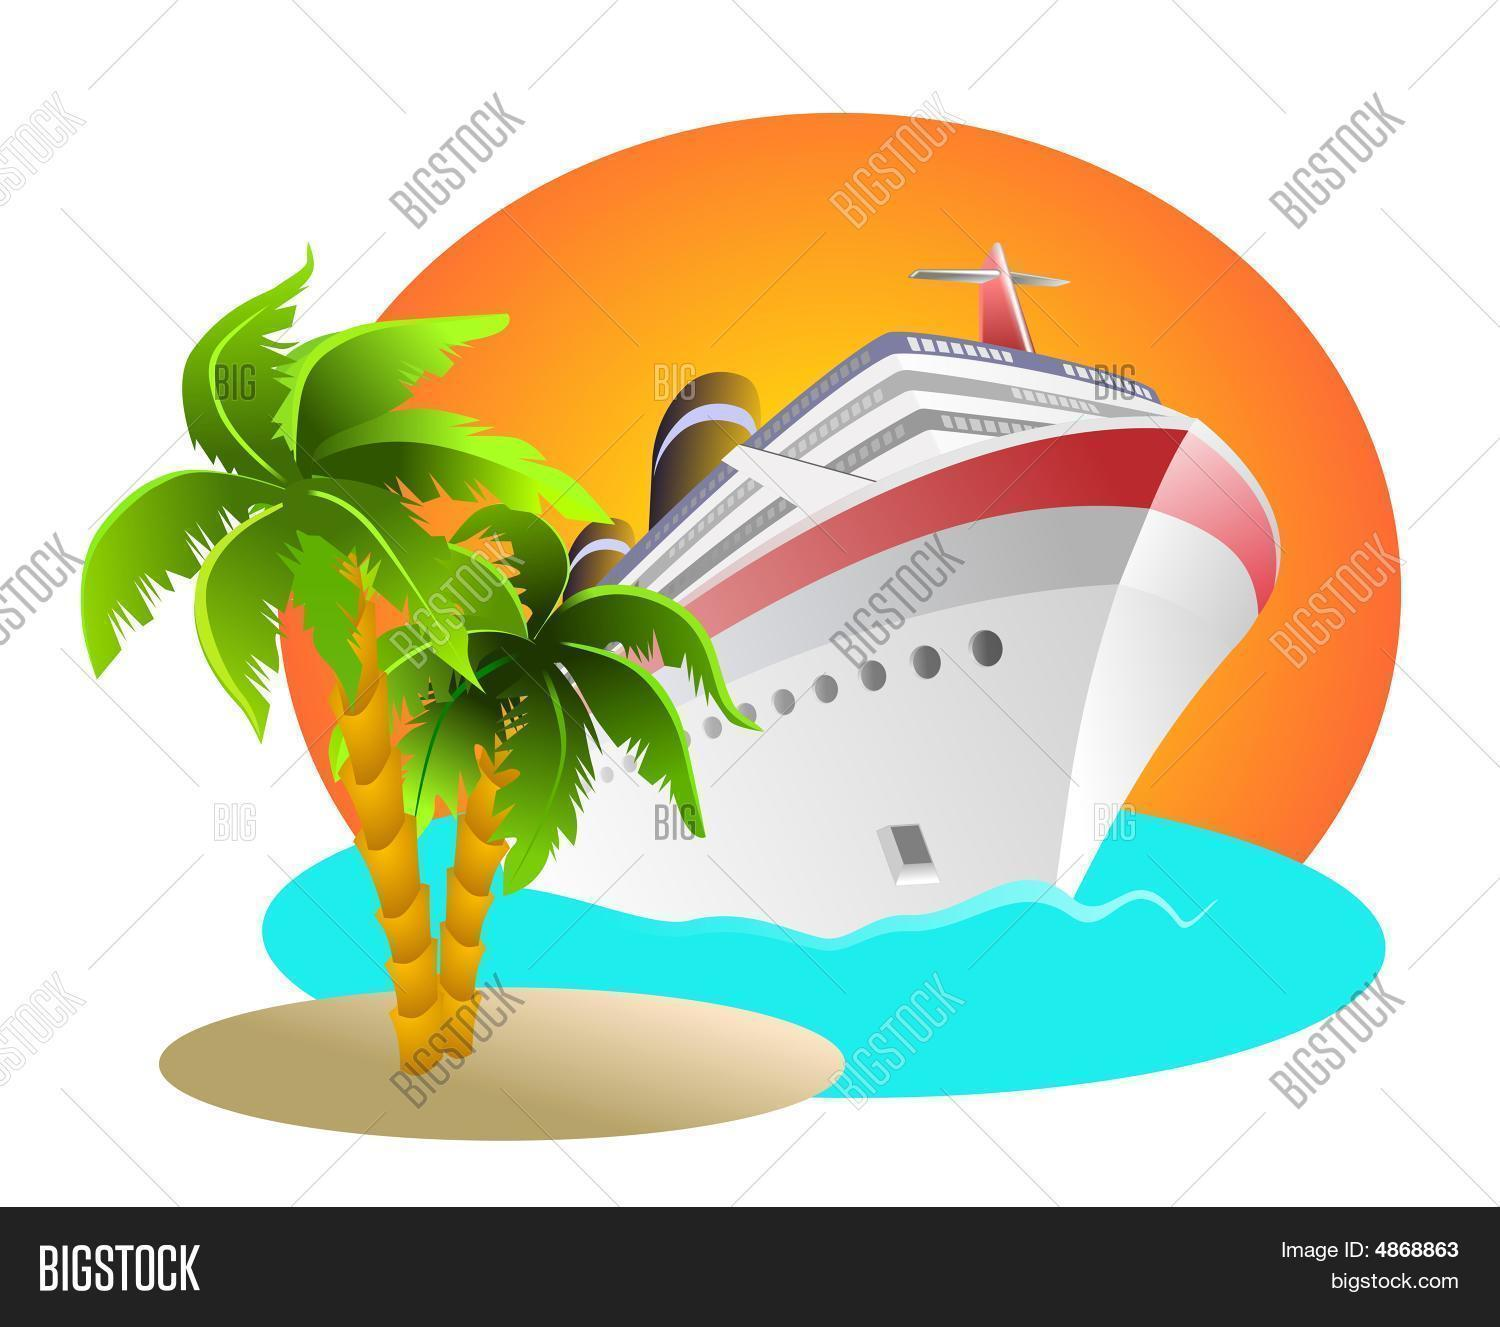 Cruise Clipart Image & Photo (Free Trial).